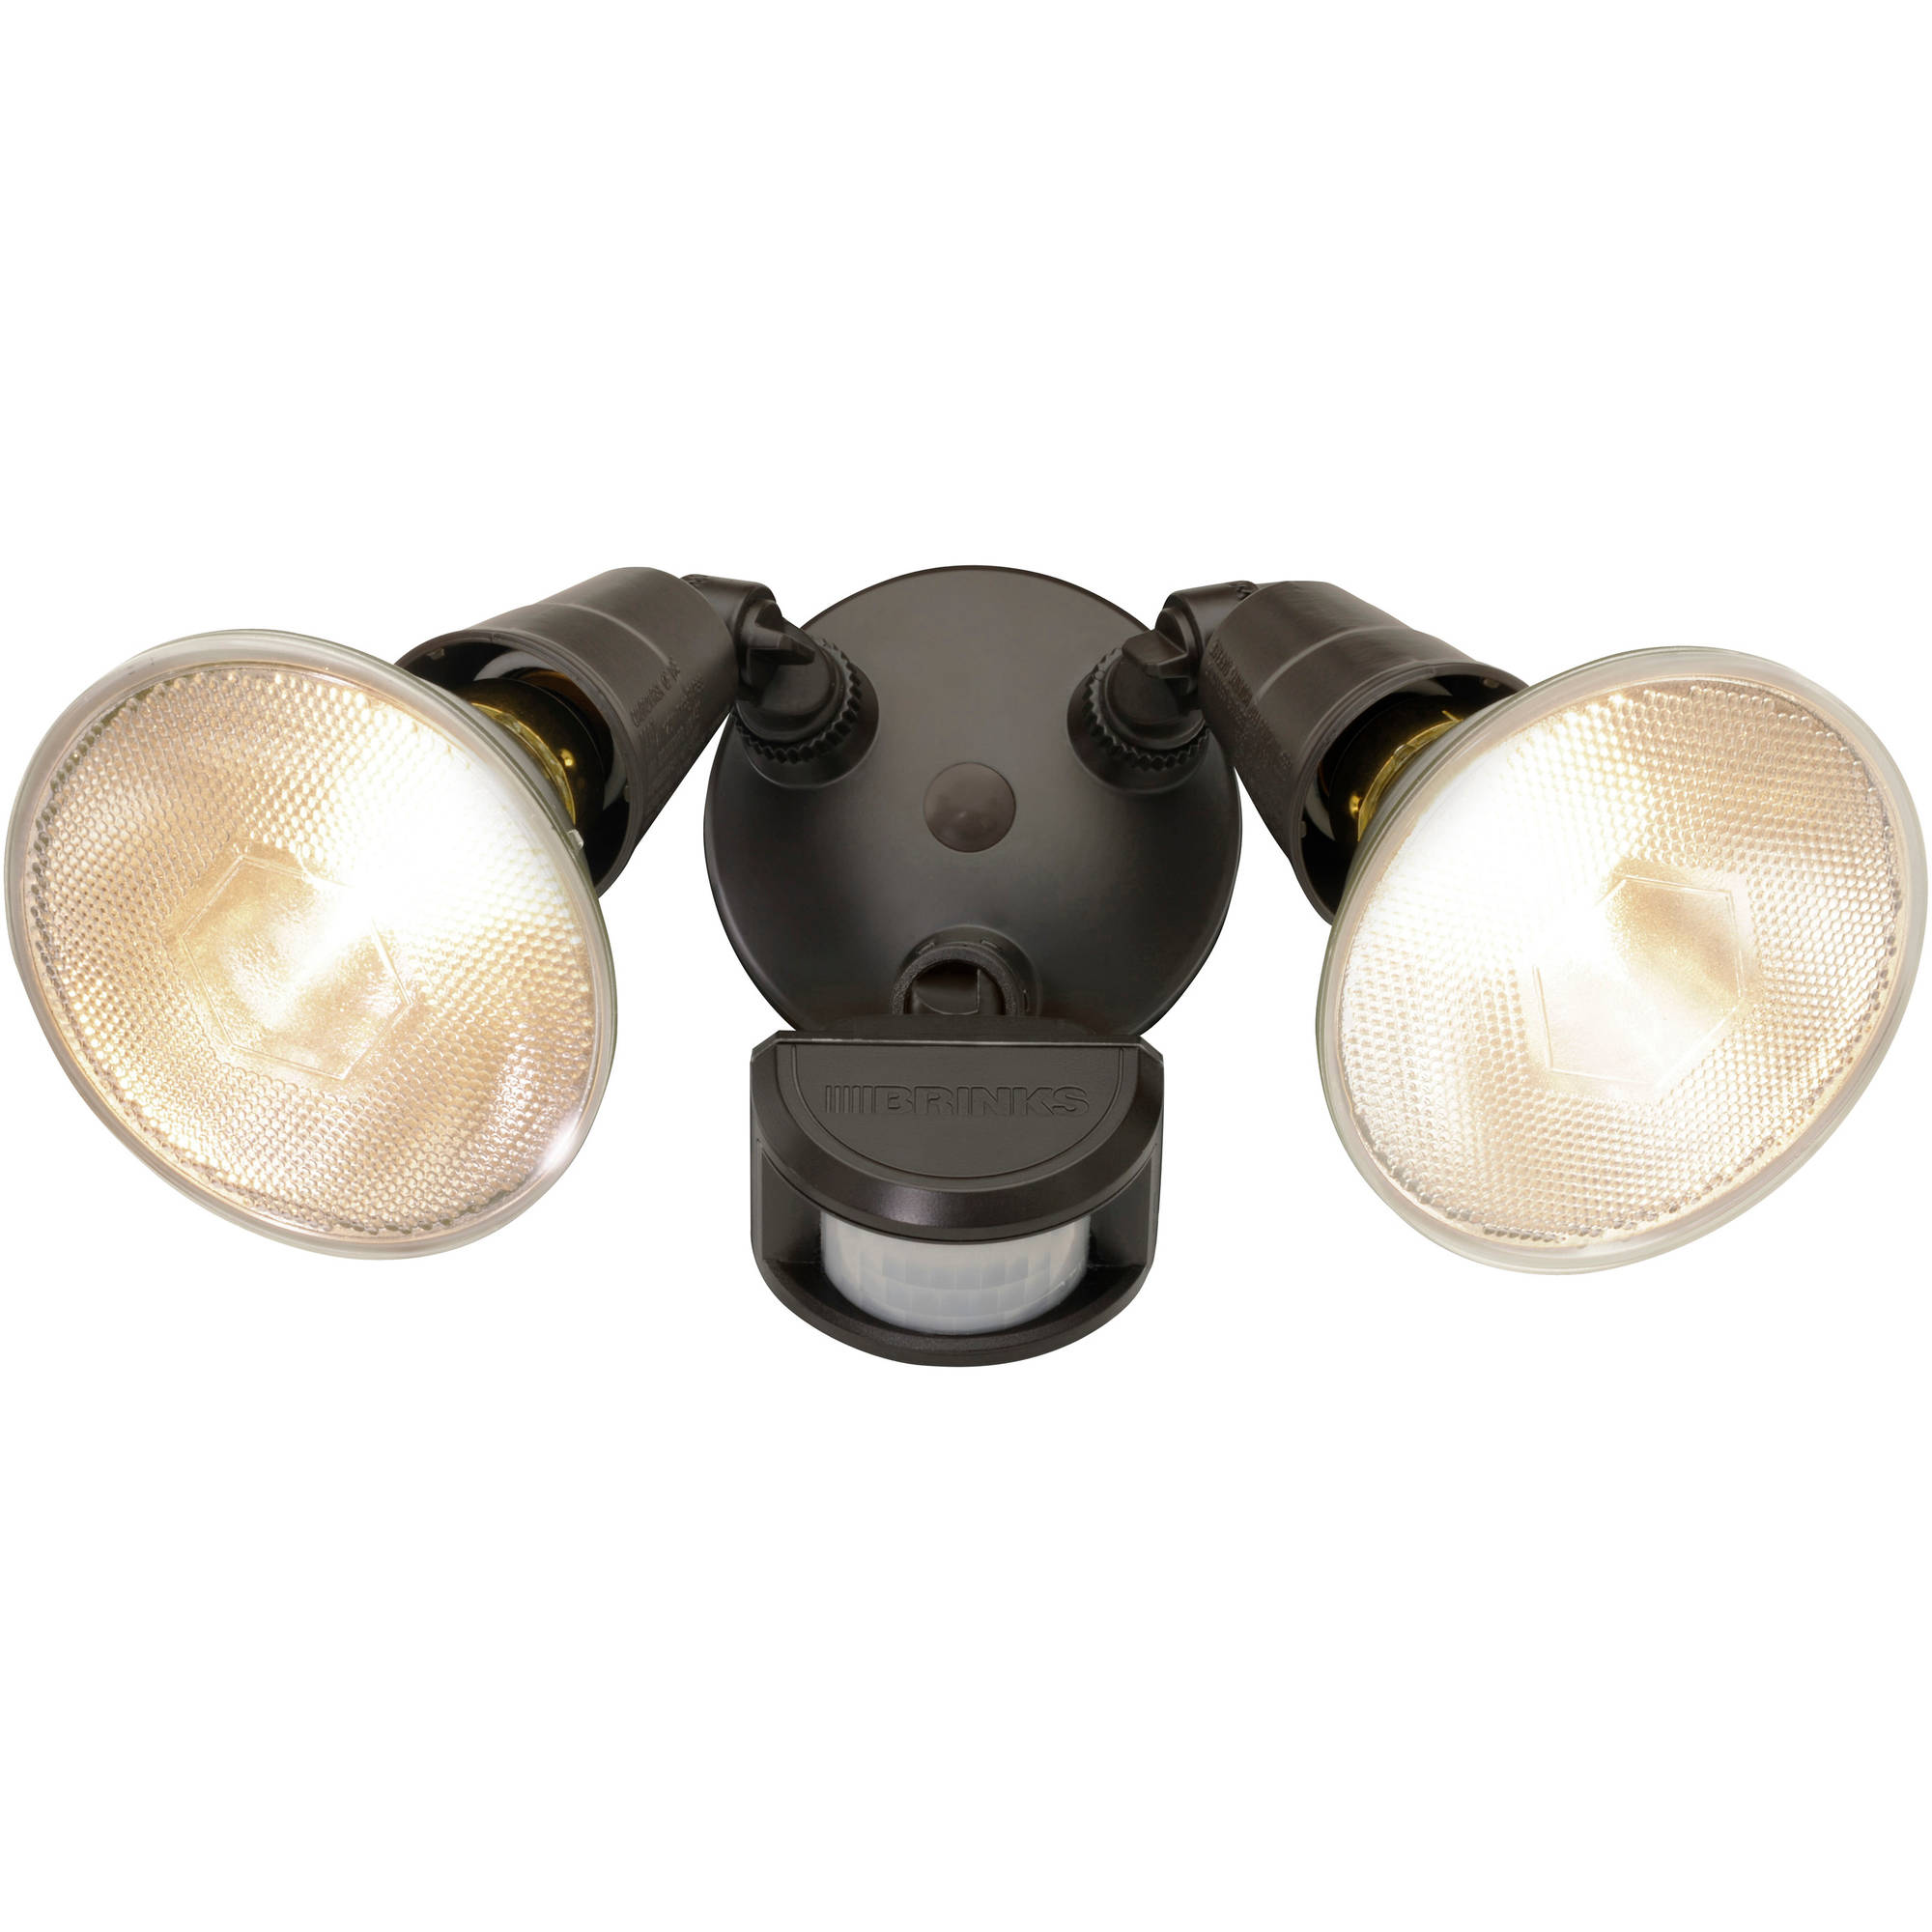 Brink's 180-Degree 2-Head without Head Motion Activated Security Light